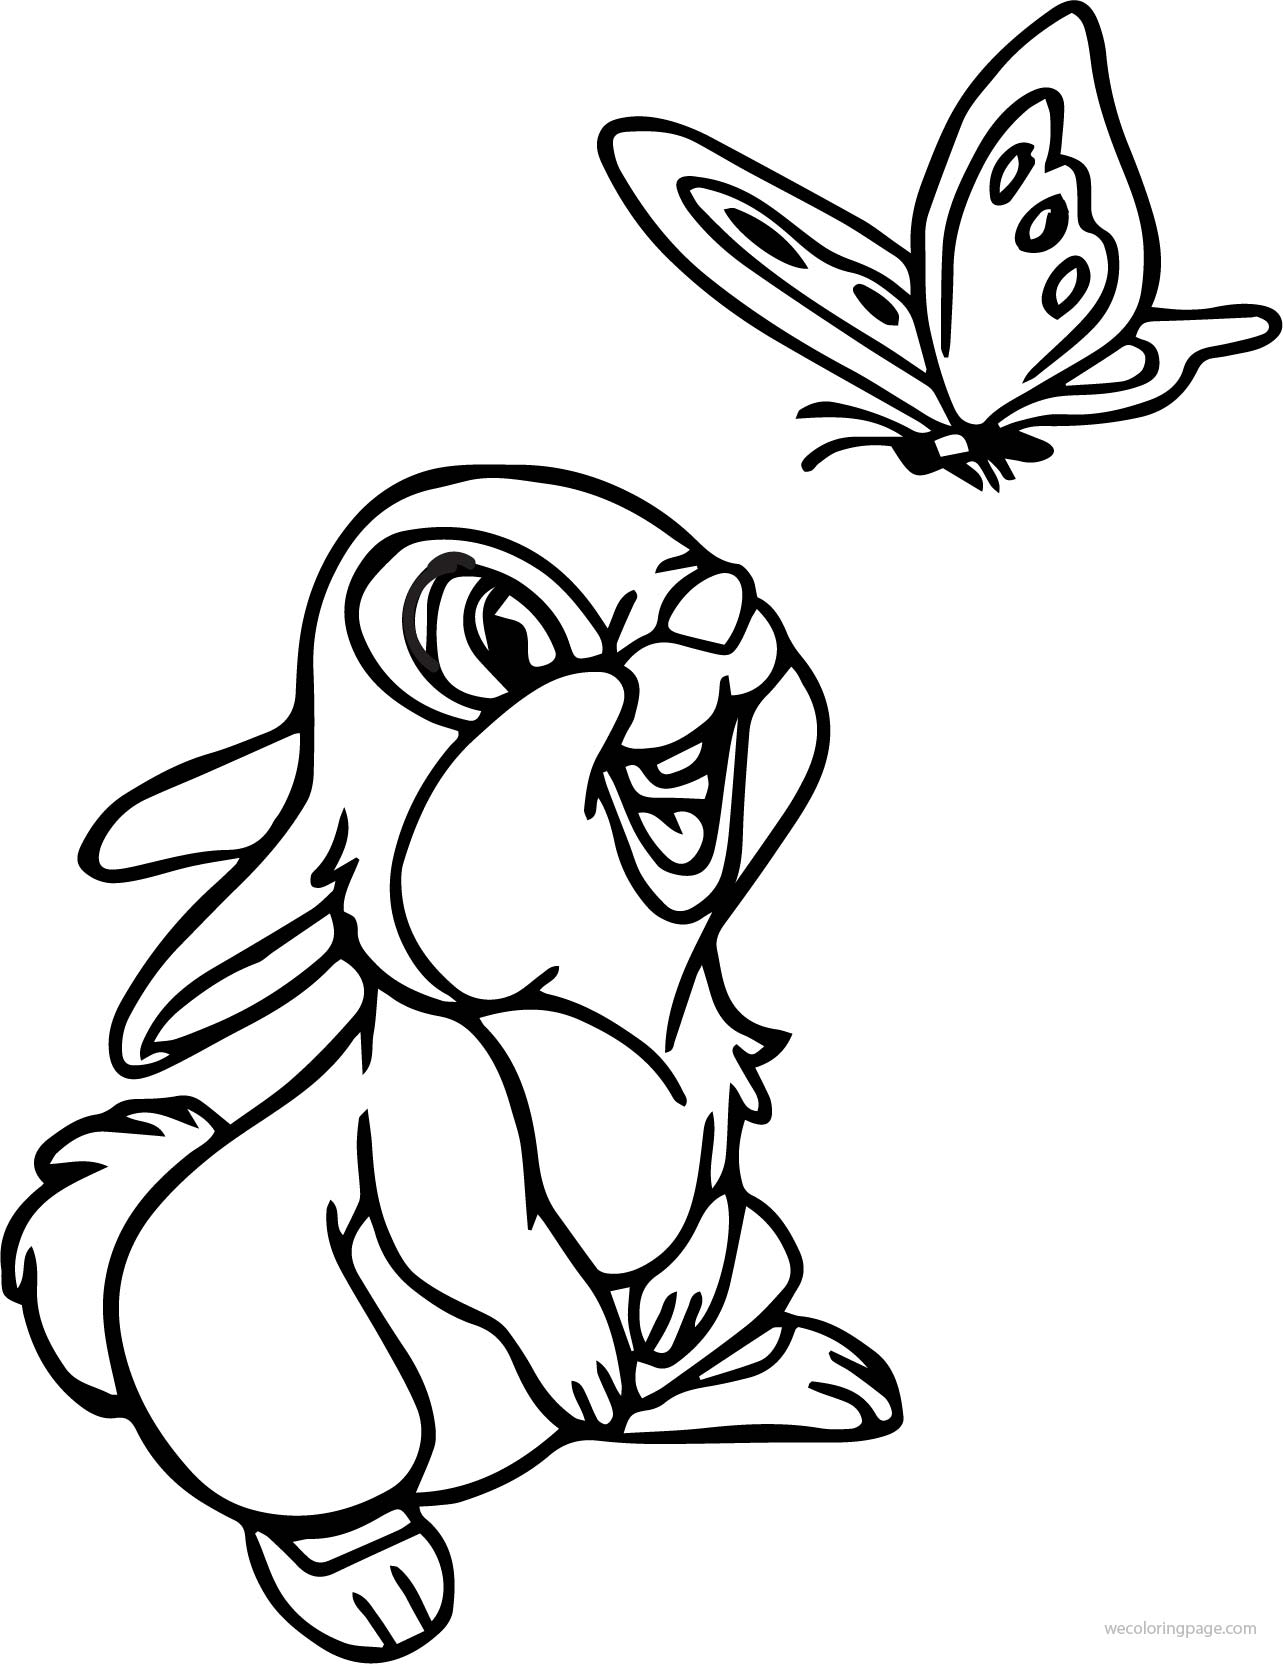 disney bambi thumper bunny see butterfly cartoon coloring page